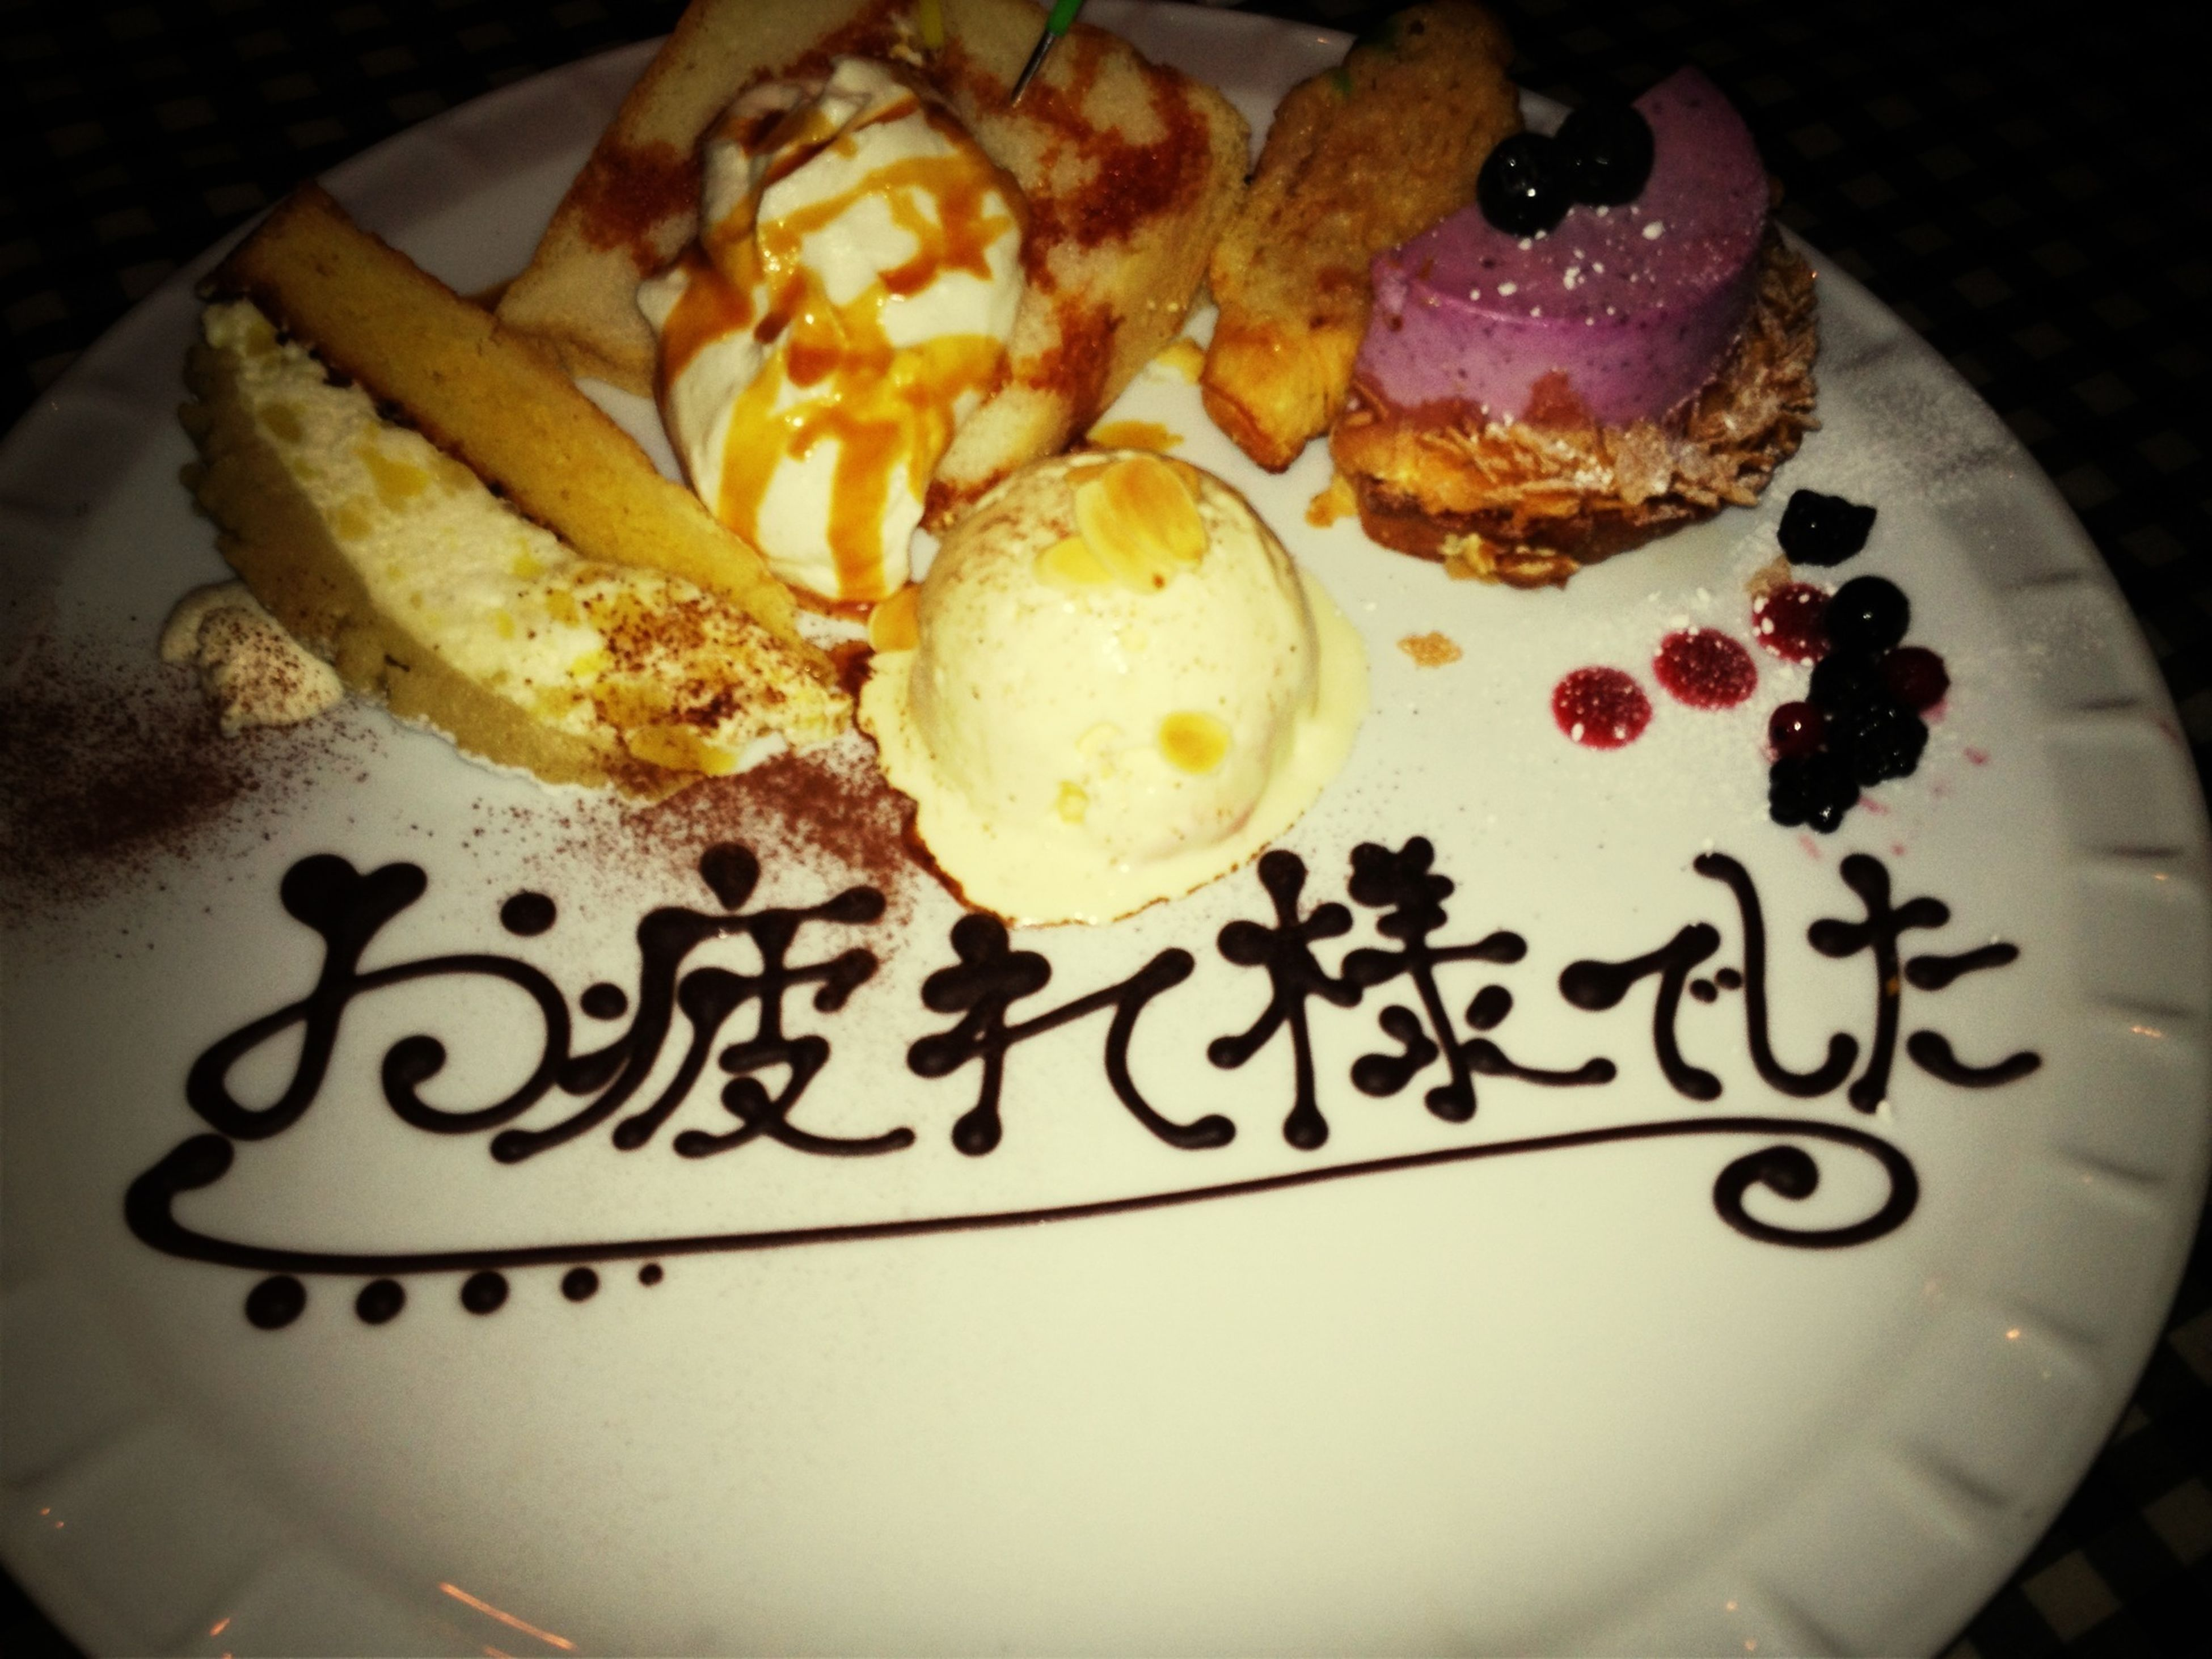 food and drink, indoors, food, sweet food, freshness, ready-to-eat, dessert, still life, indulgence, unhealthy eating, plate, close-up, cake, temptation, table, high angle view, baked, no people, serving size, chocolate